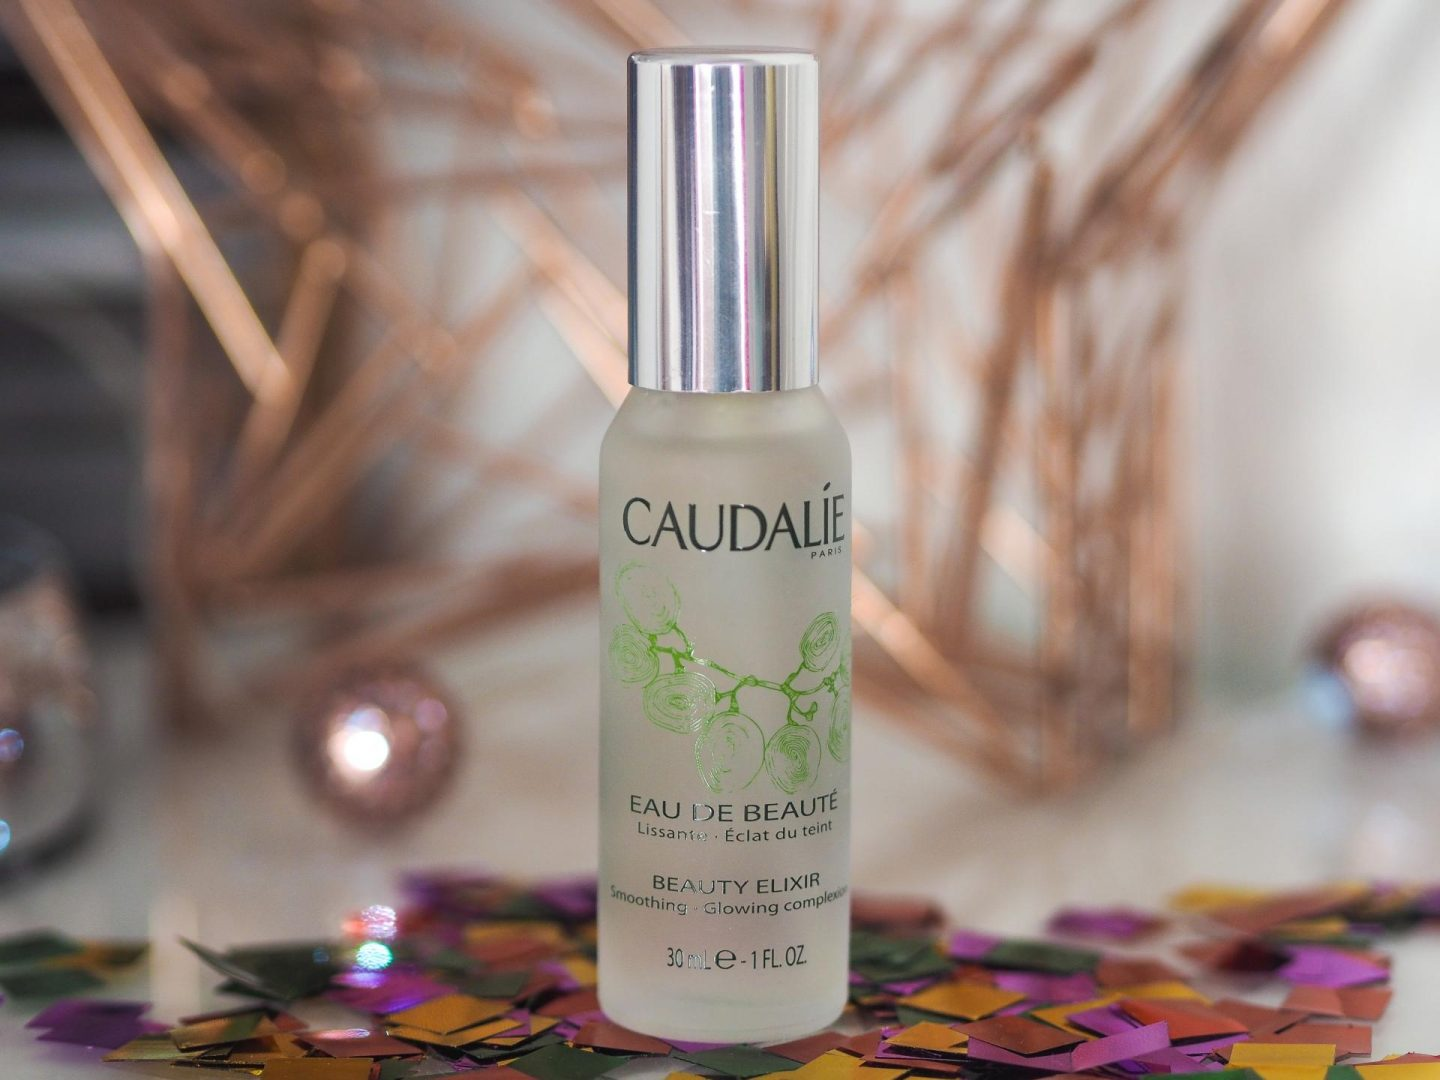 Caudalie Beauty Elixir, Five Skincare Items I Couldn't Live Without - Rachel Nicole UK Blogger